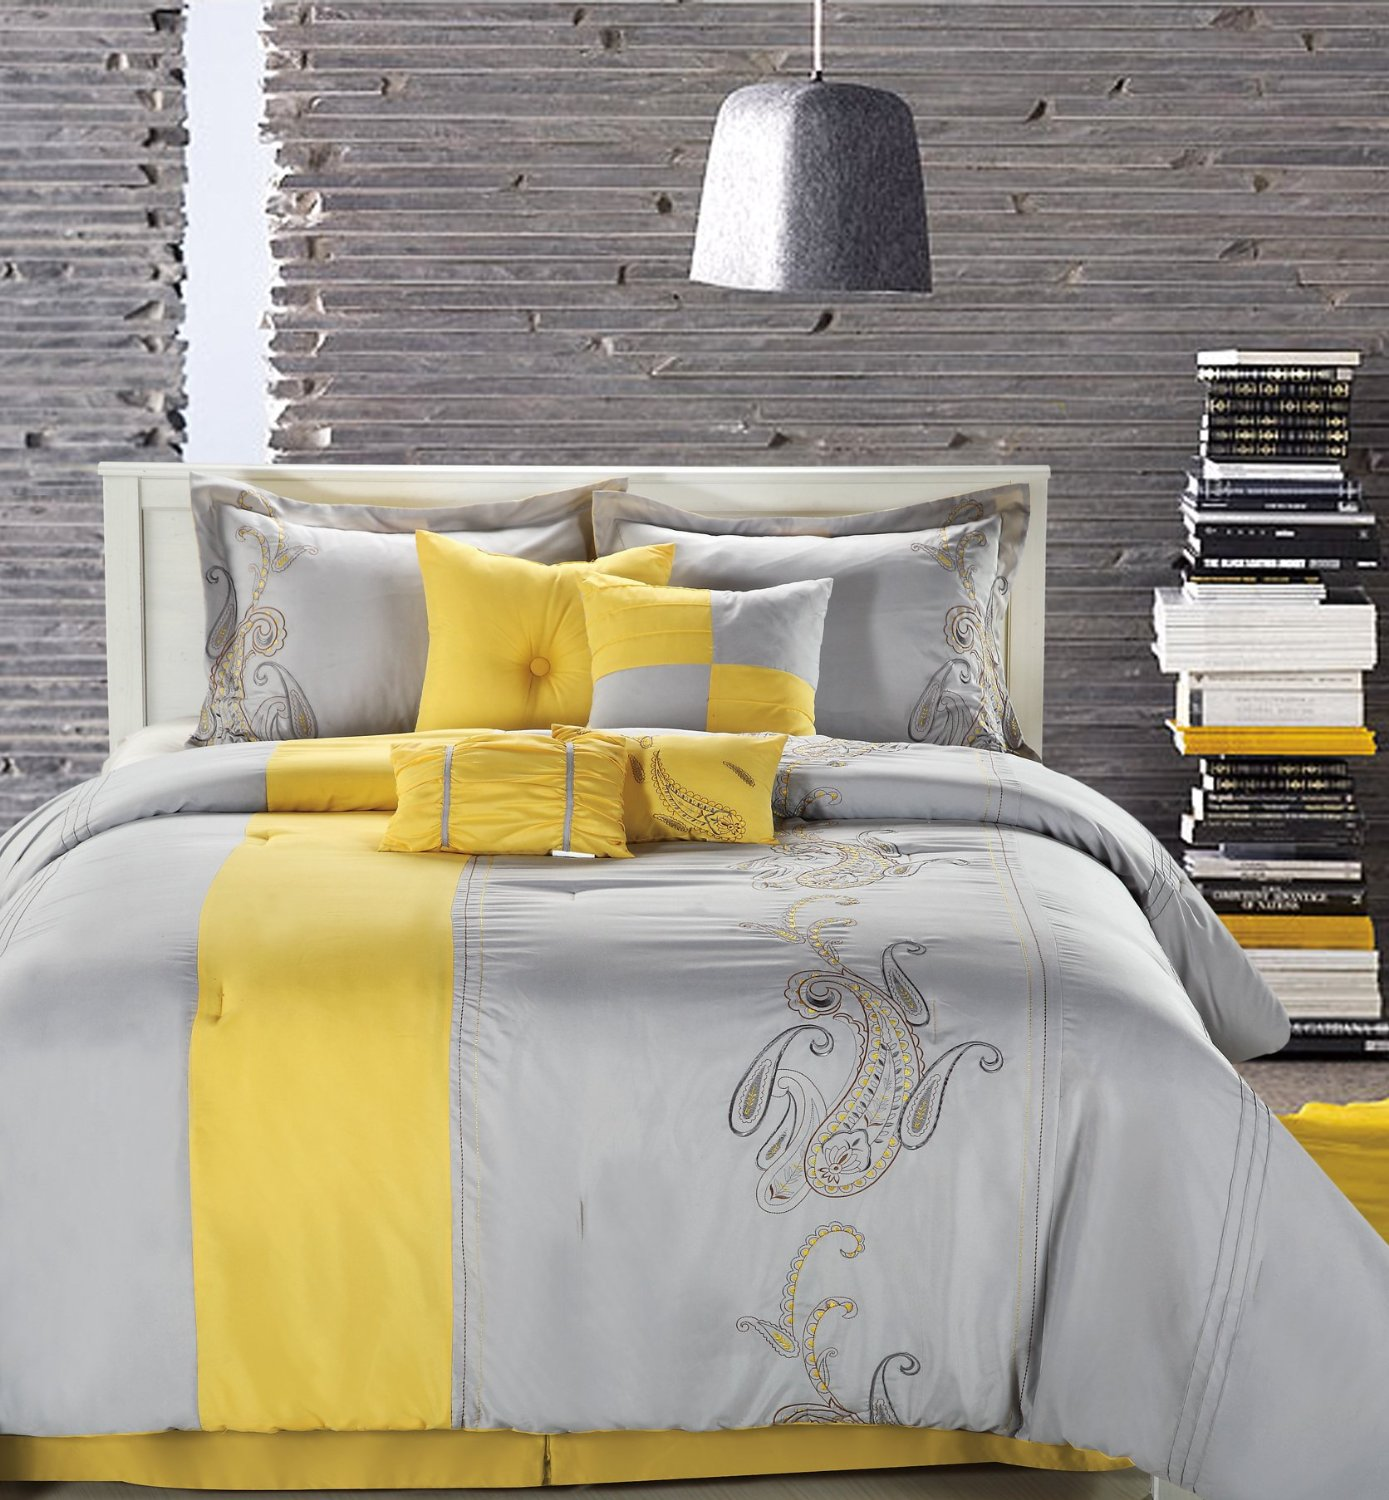 Superior Duvet And Pillow Also Chandelier For Perfect Gray And Yellow  Bedroom